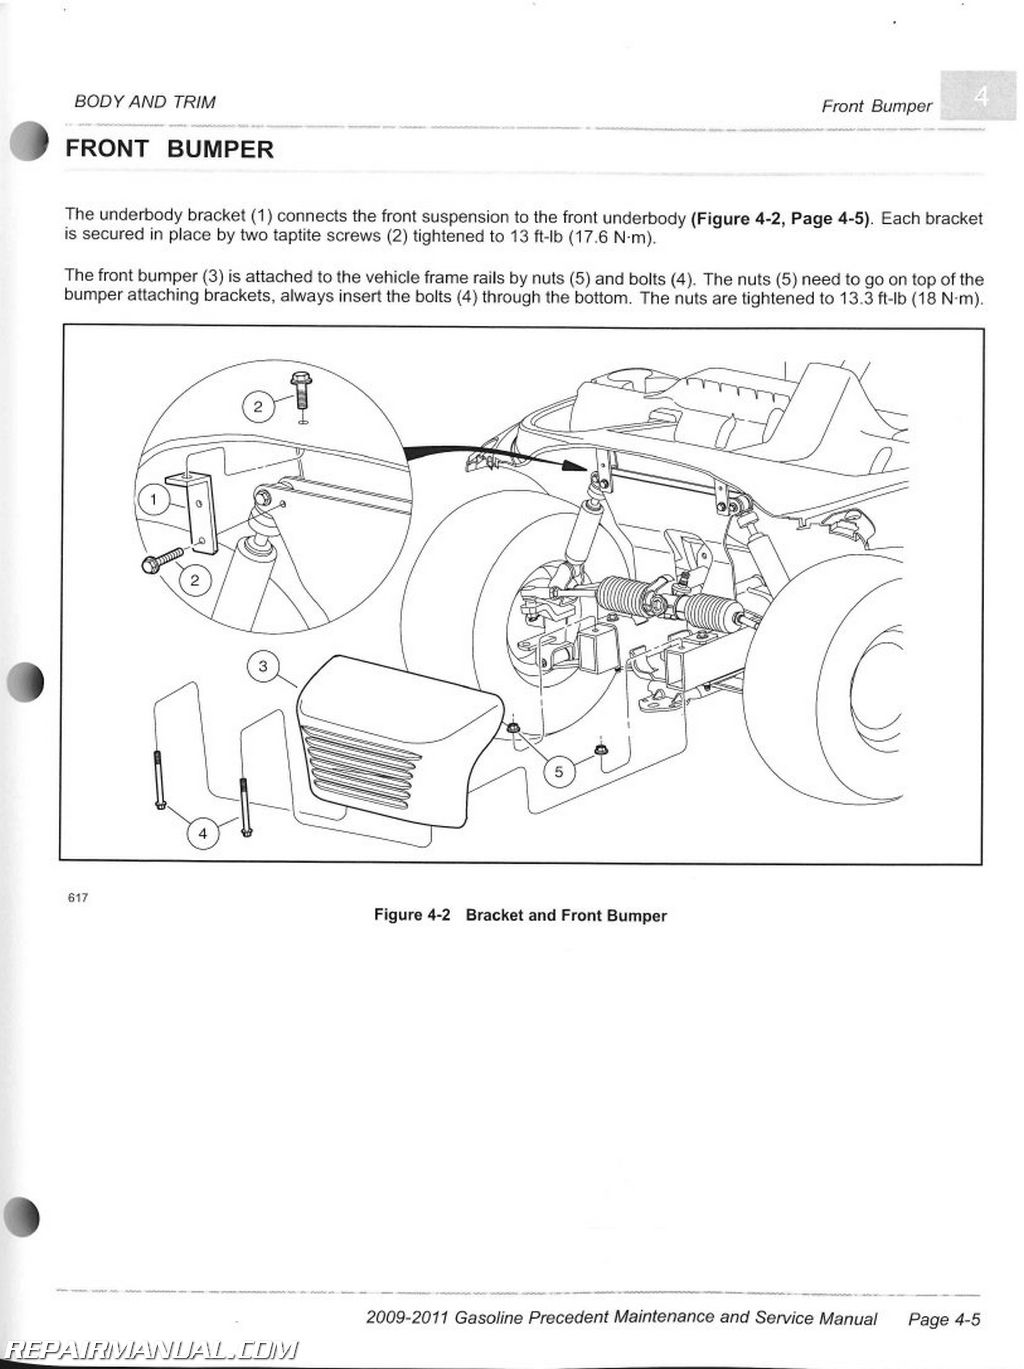 2008 Club Car Gas Wiring Diagram Trusted Wiring Diagram 2006 Club Car  Precedent Gas Wiring Diagram 2006 Club Car Precedent Gas Wiring Diagram